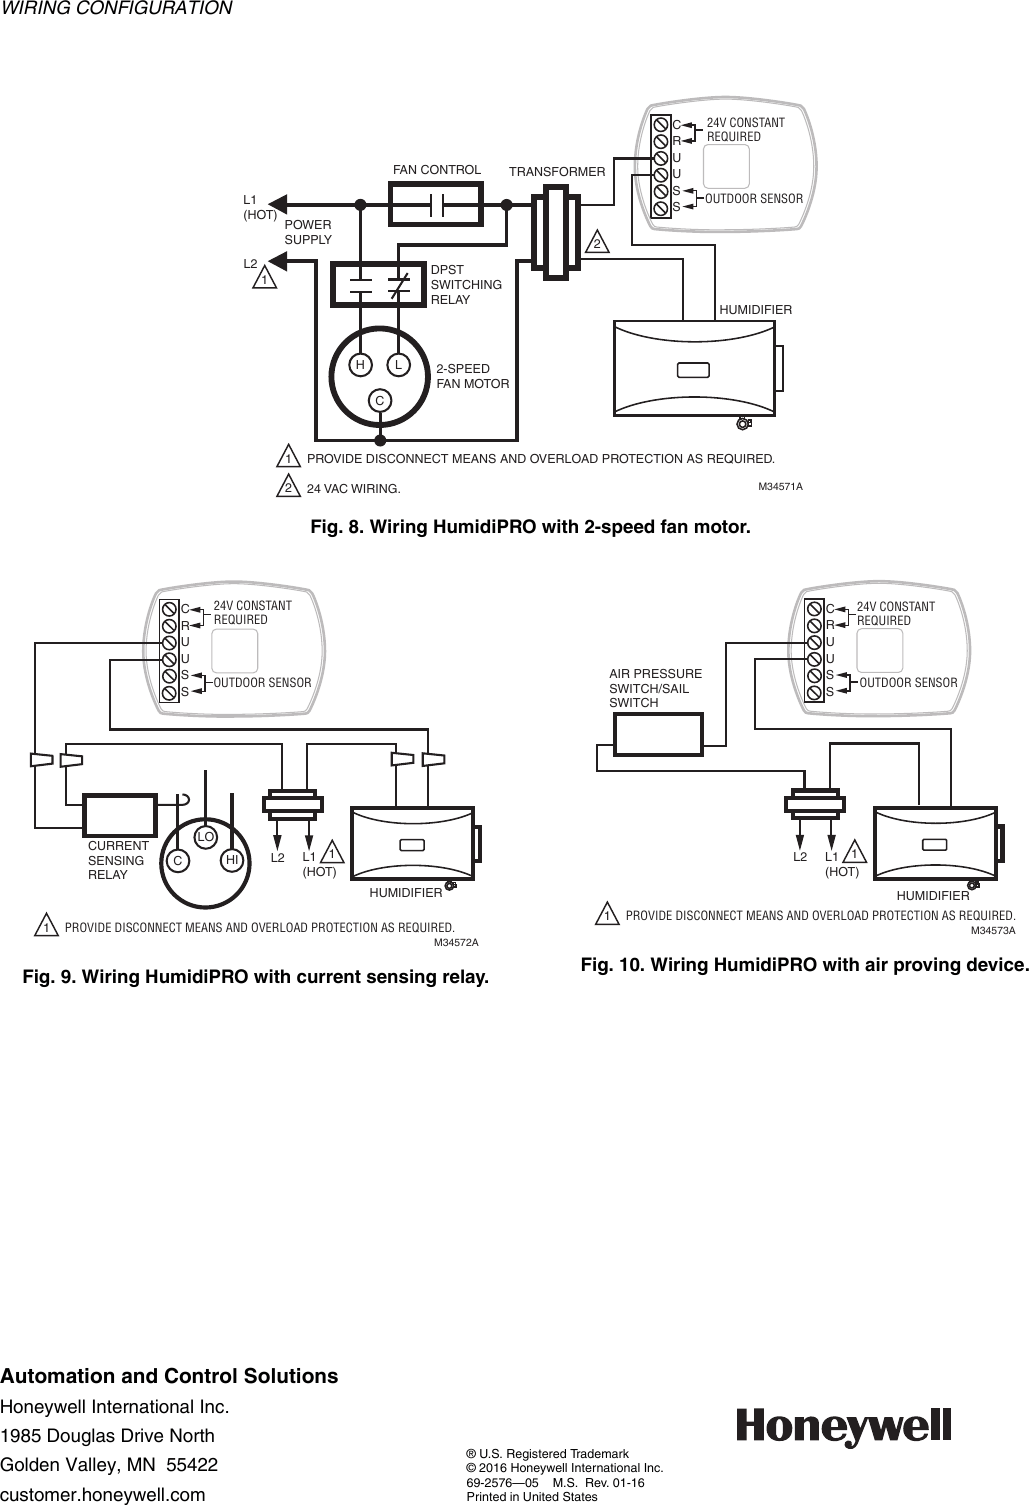 Honeywell Humidifier Wiring Diagram